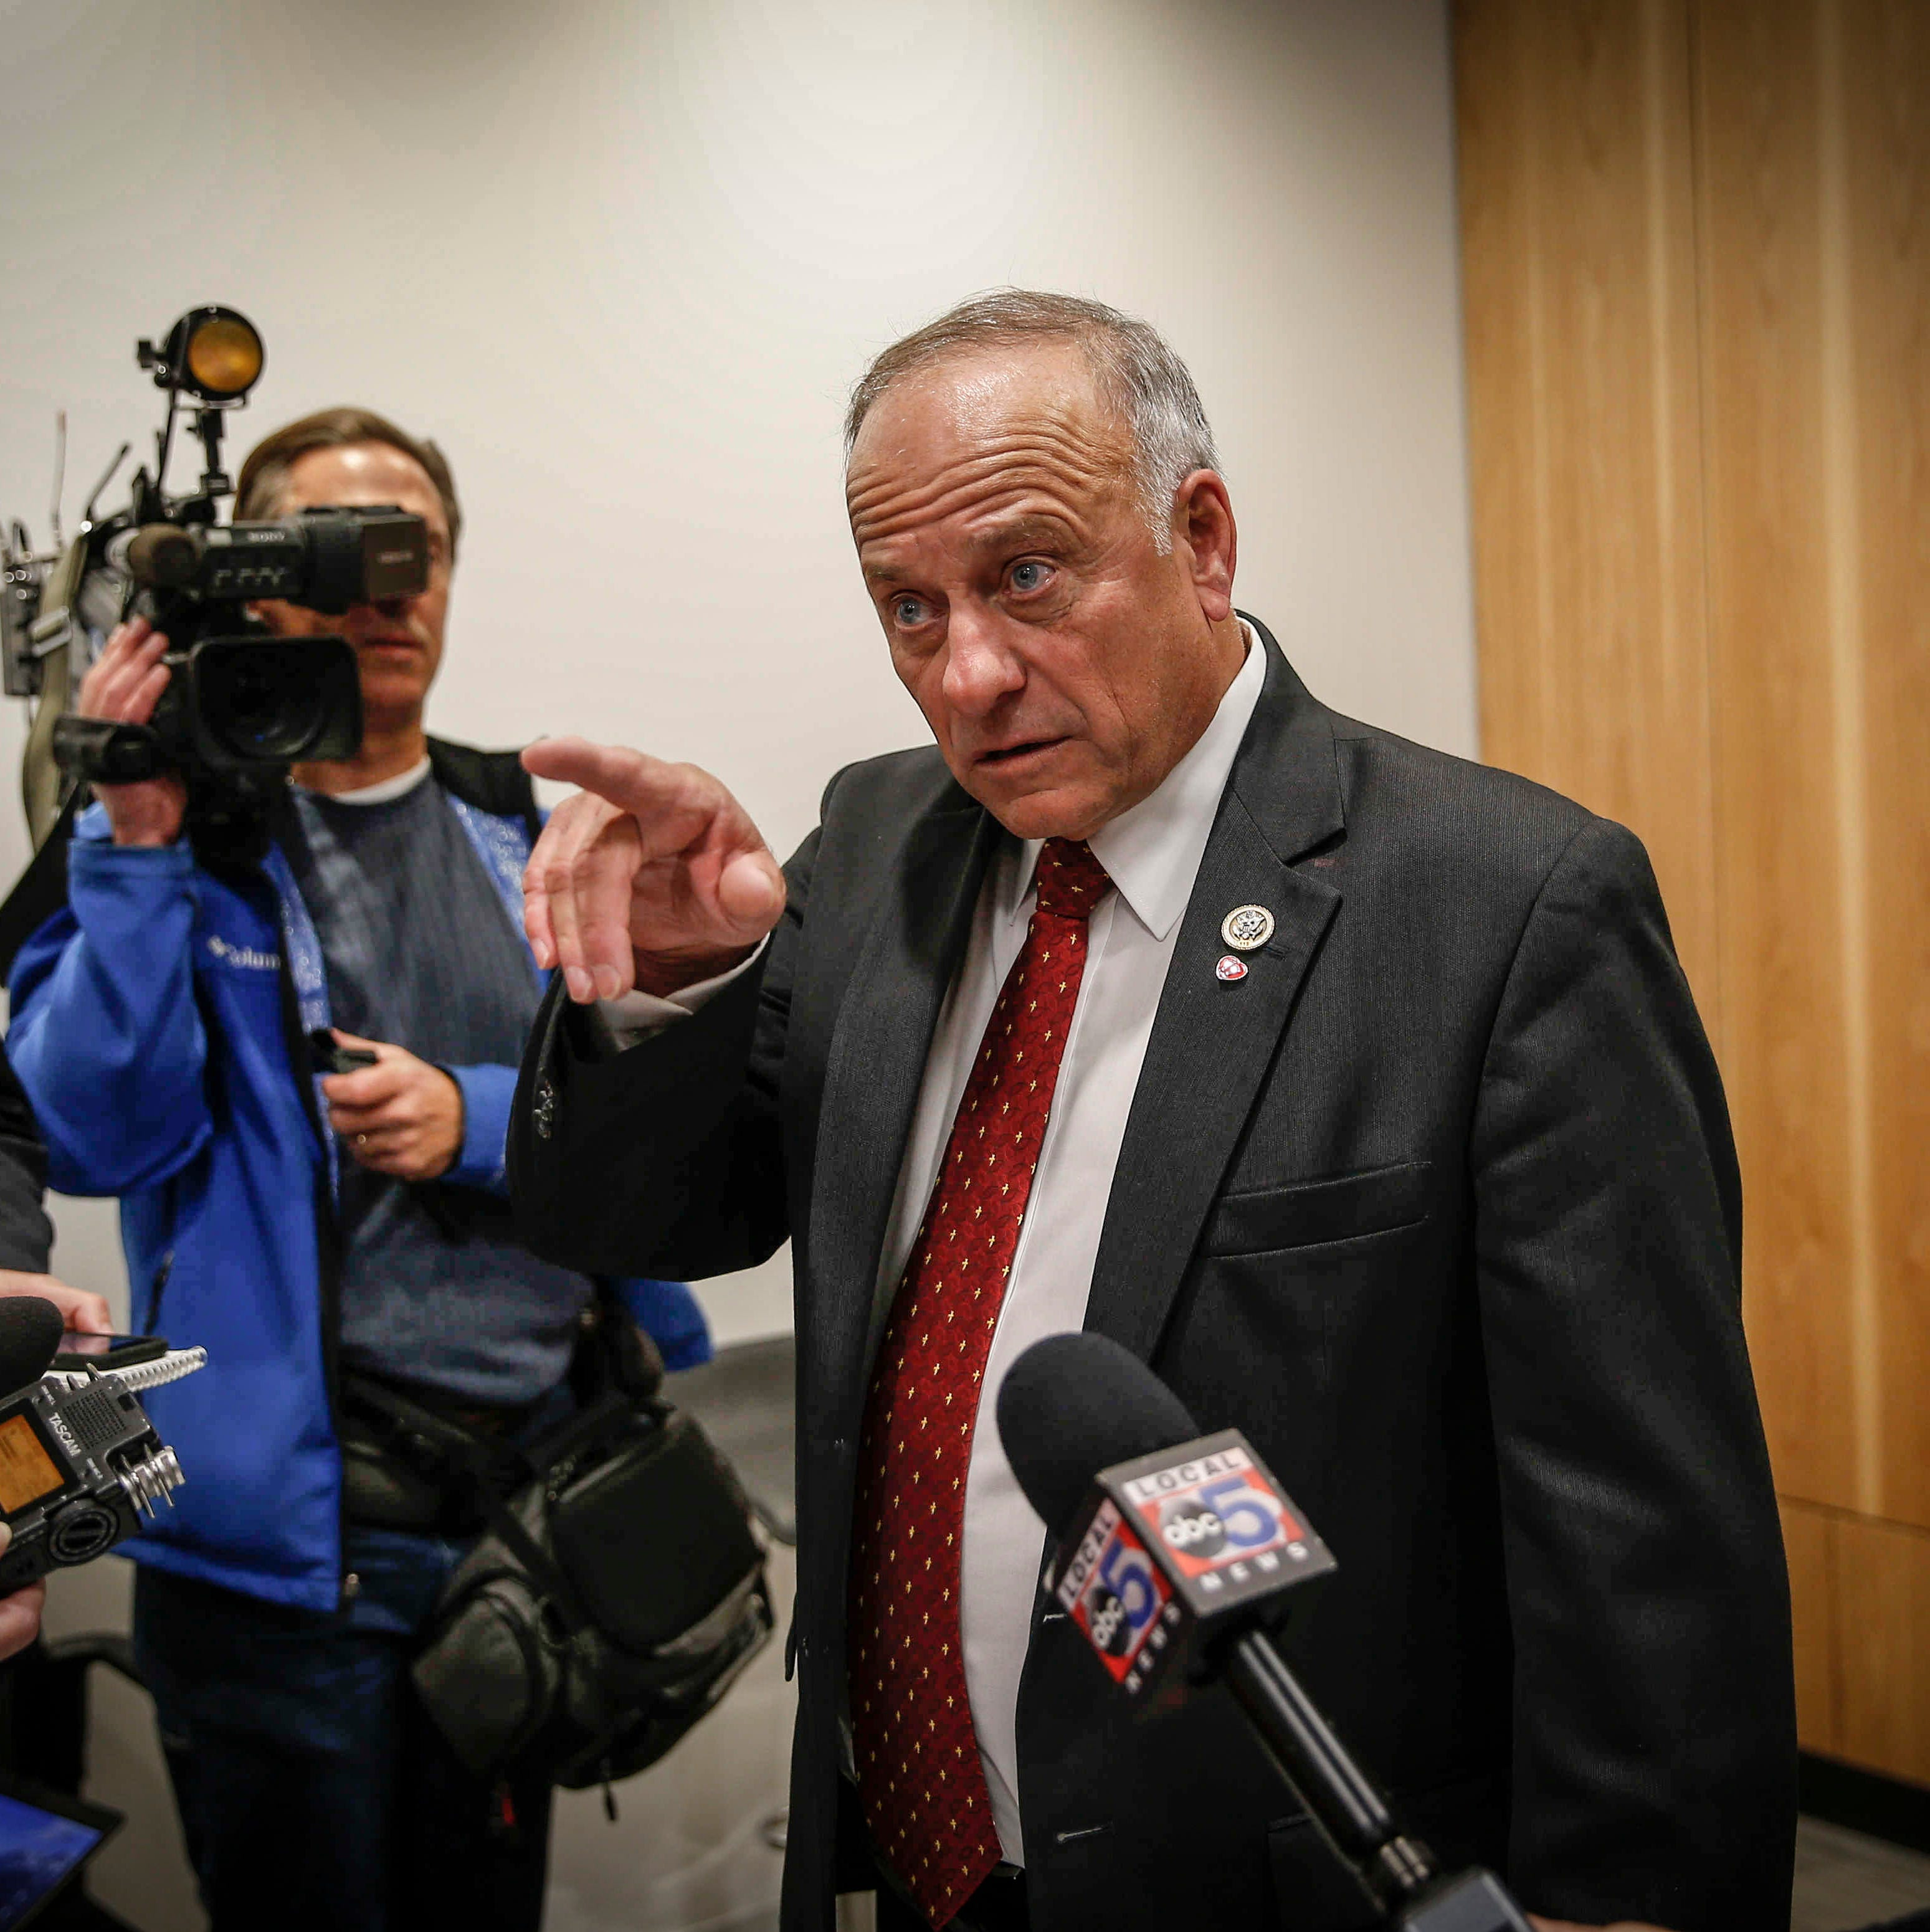 Republican Party needs to draw a hard line on Steve King